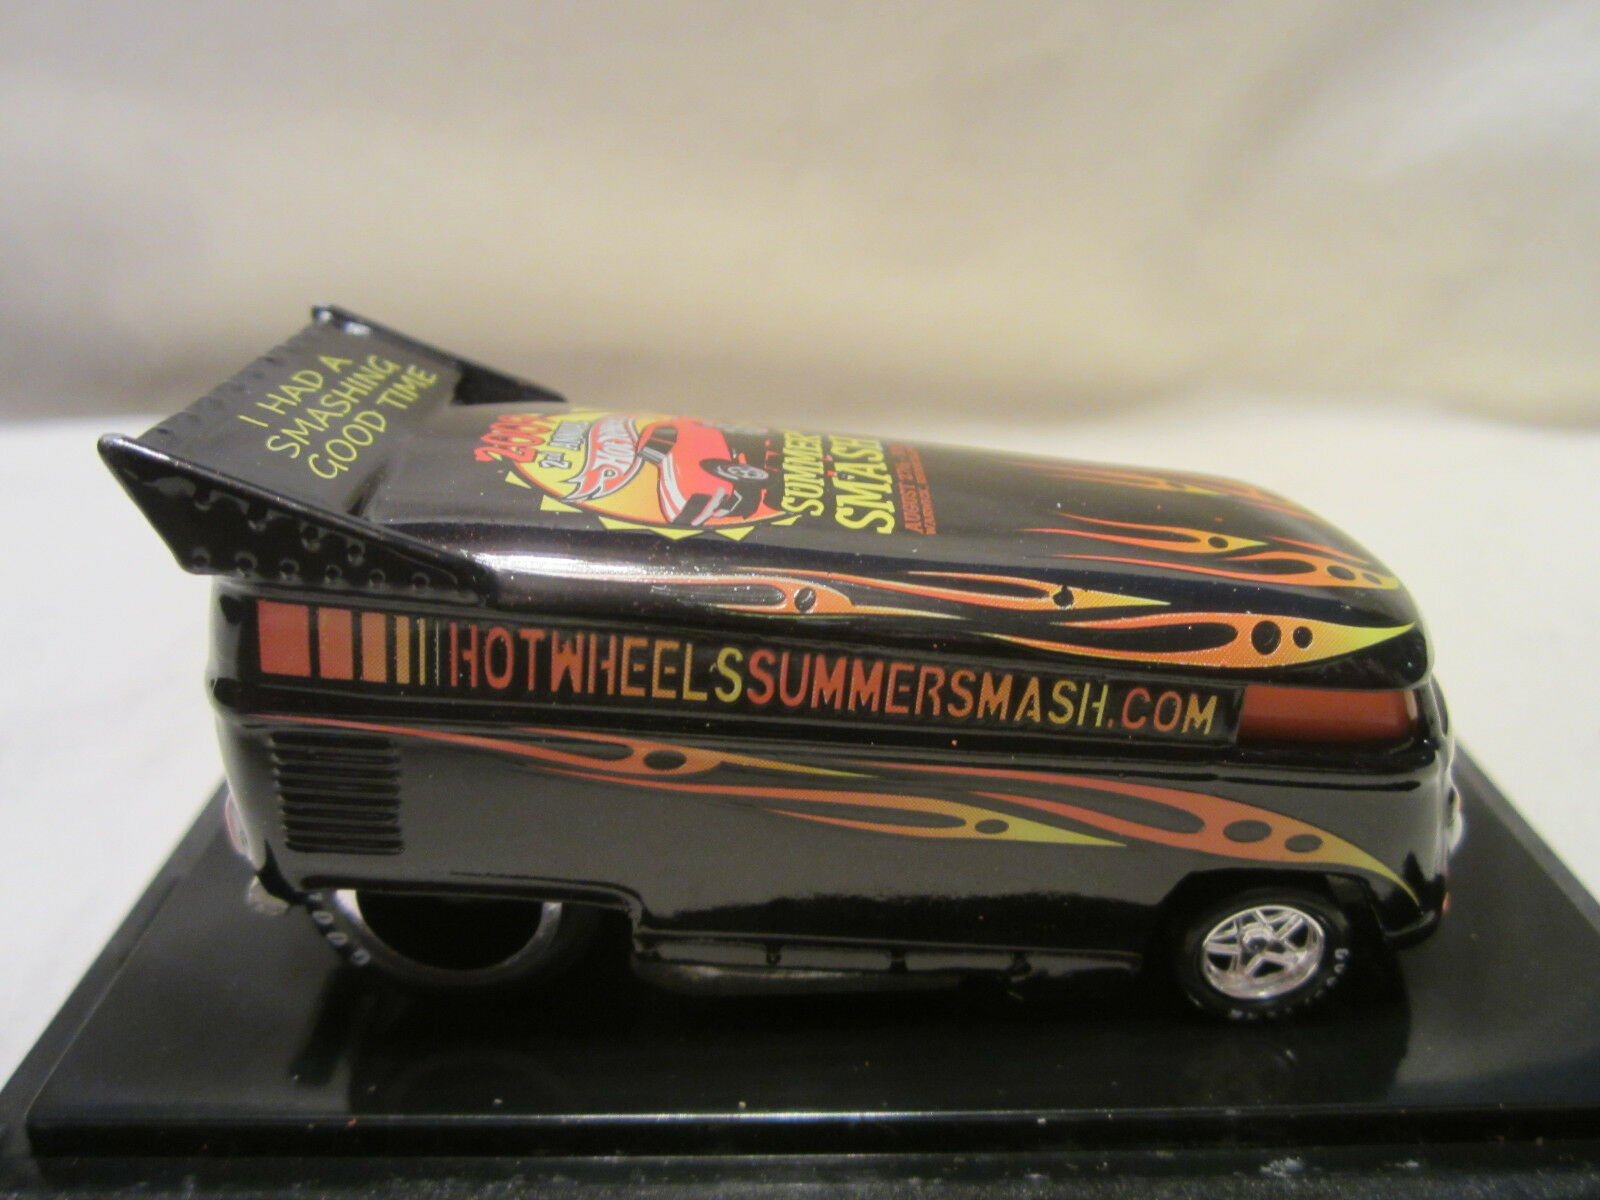 Hot Wheels Liberty Promotions 2009 Summer Smash VW DRAG BUS - Attendee 157 450